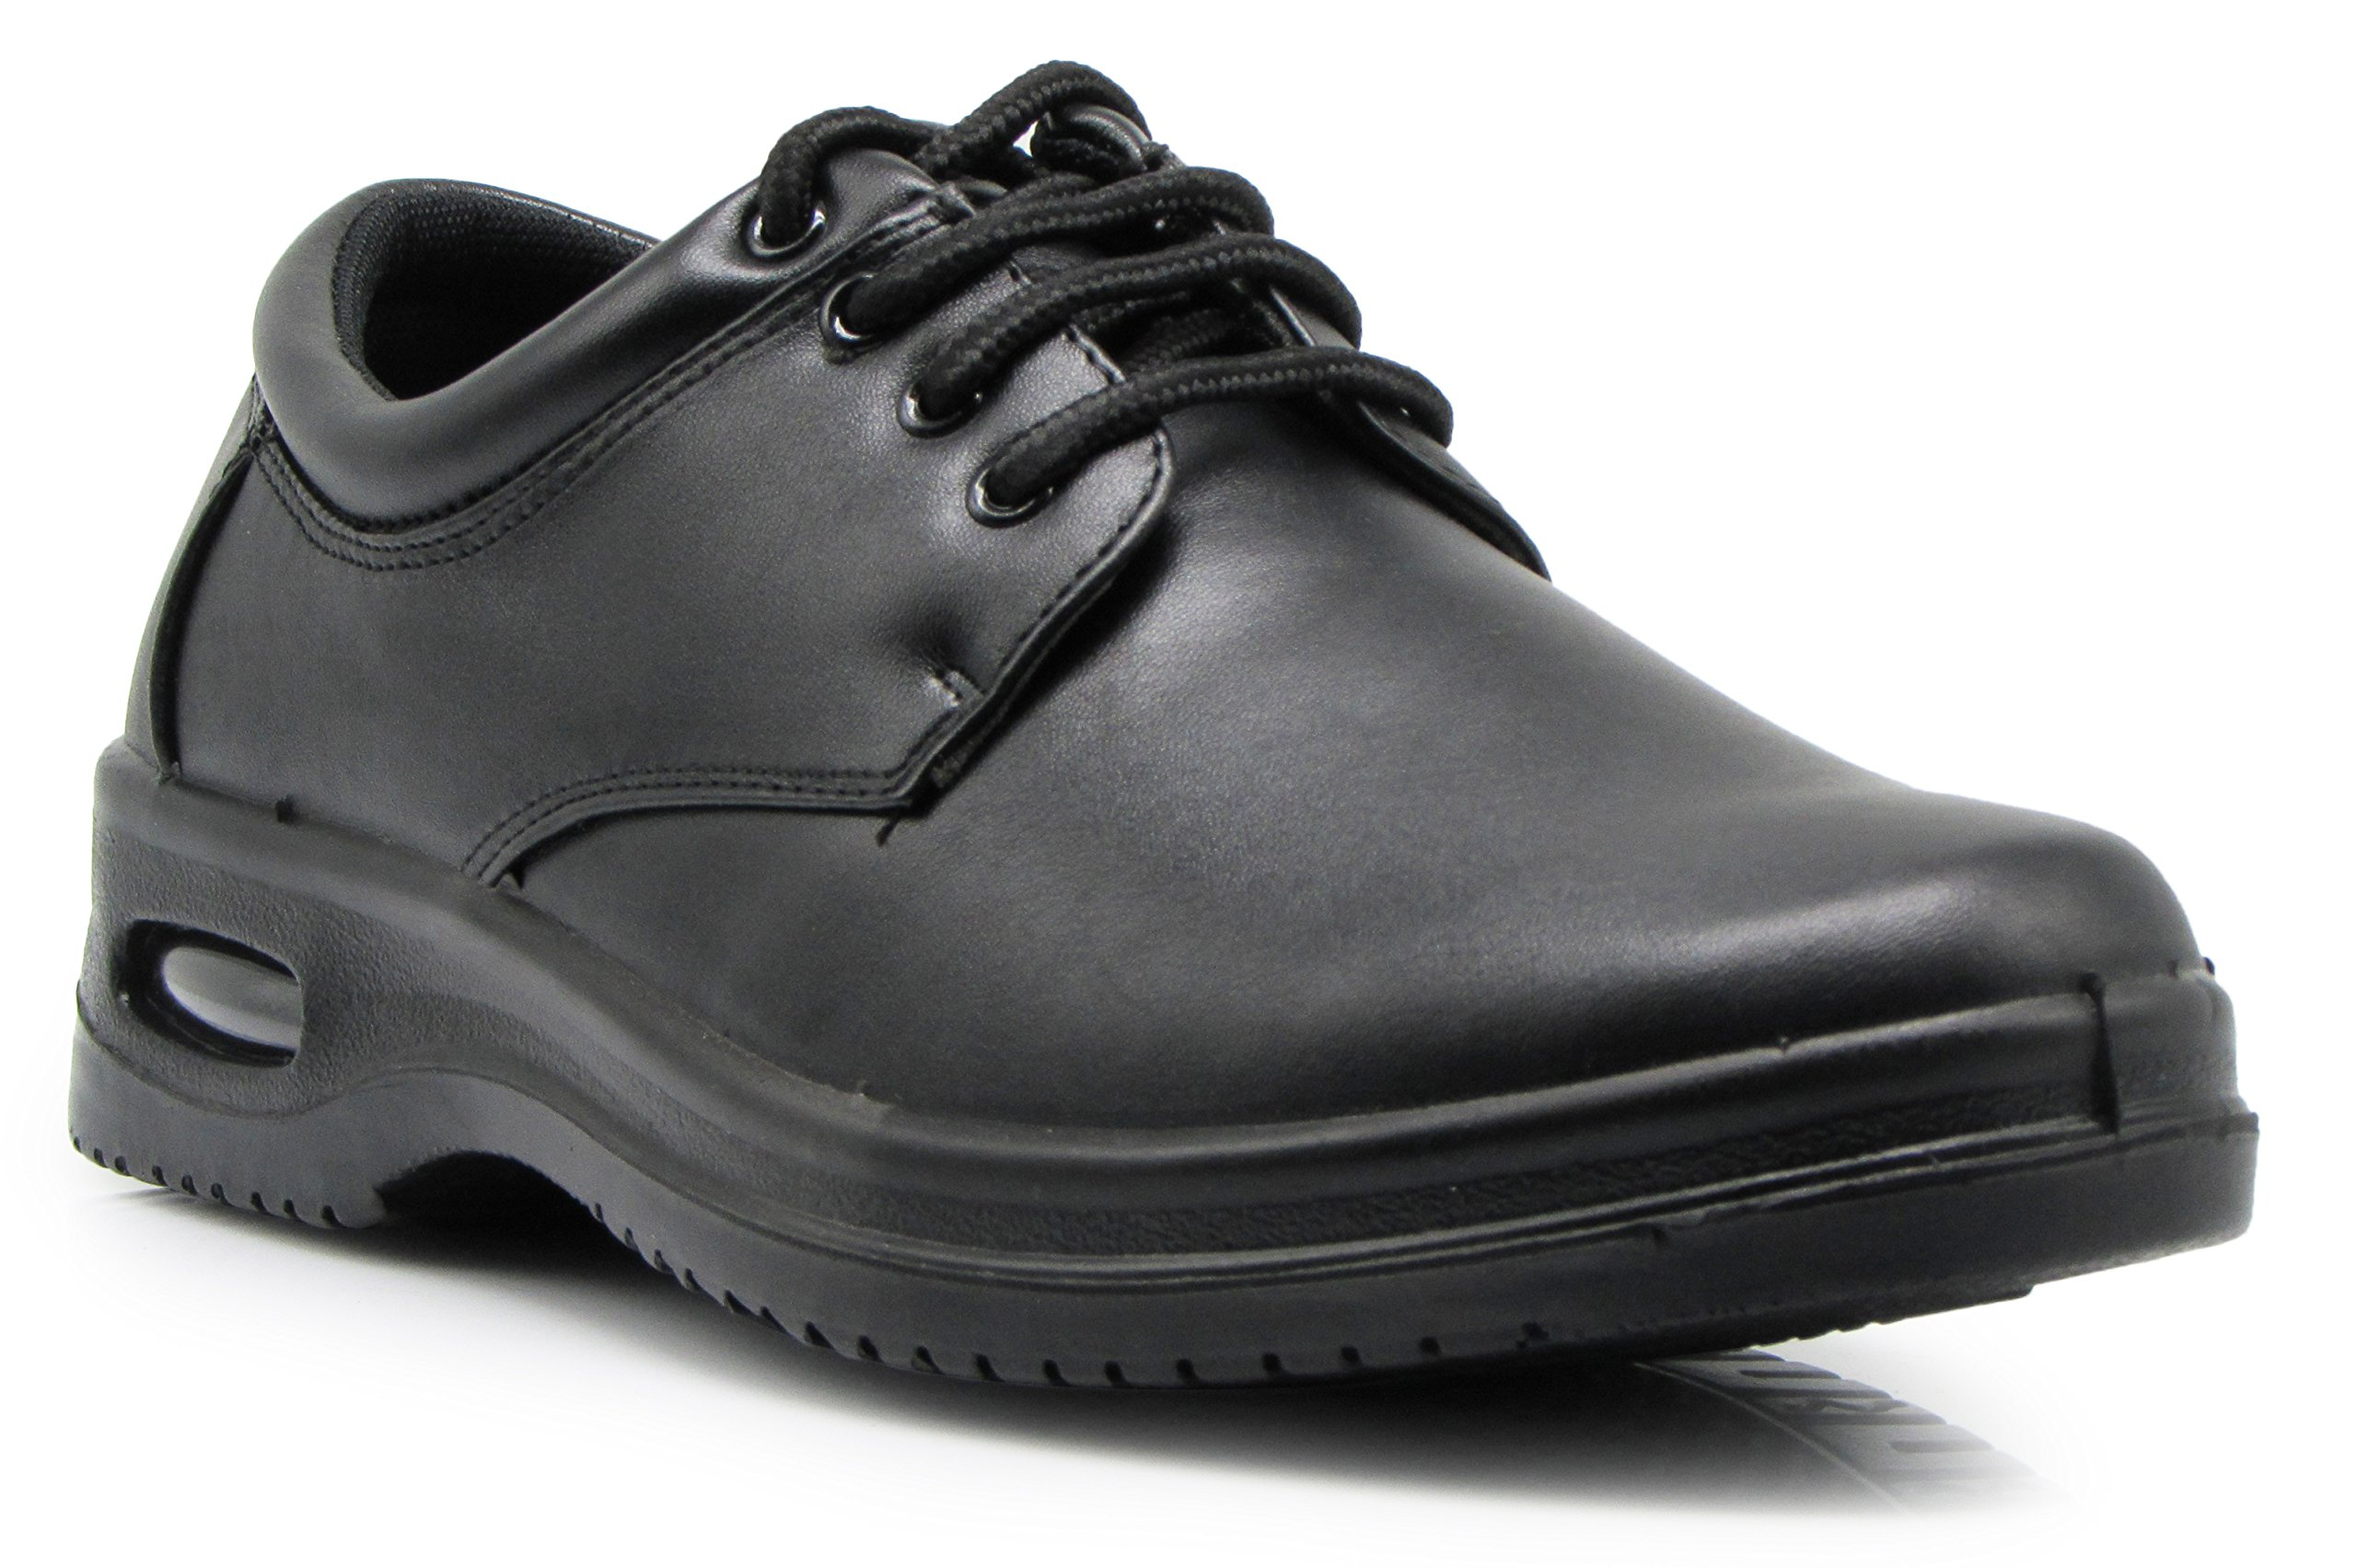 OR4 Mens Black Oil Resistant Anti Slip Restaurant Lace up Oxfords Loafers Working Shoes with Air (9.5, Lace up)